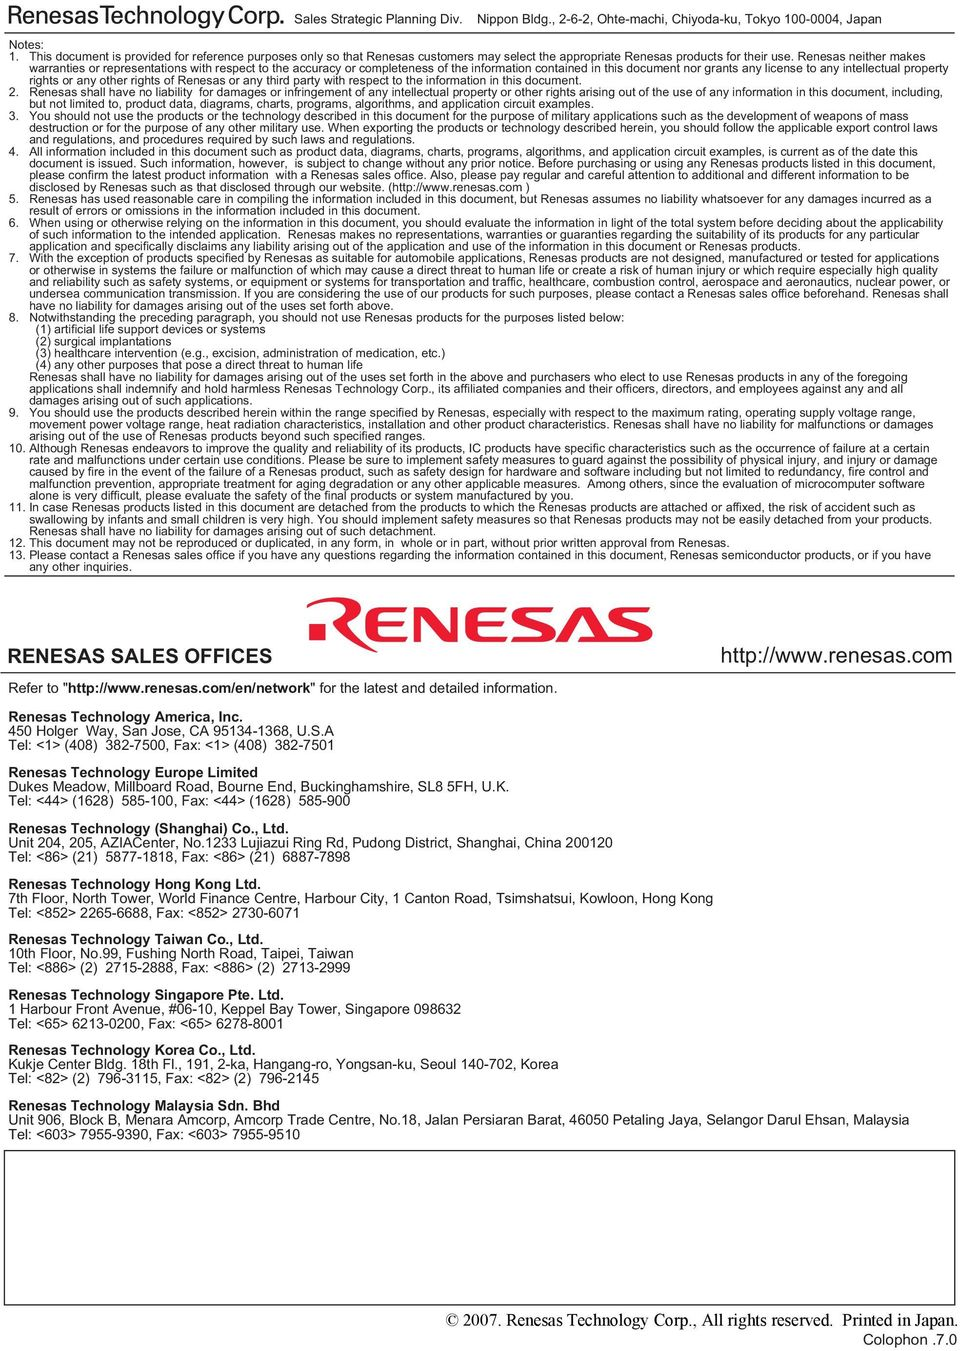 Renesas neither makes warranties or representations with respect to the accuracy or completeness of the information contained in this document nor grants any license to any intellectual property